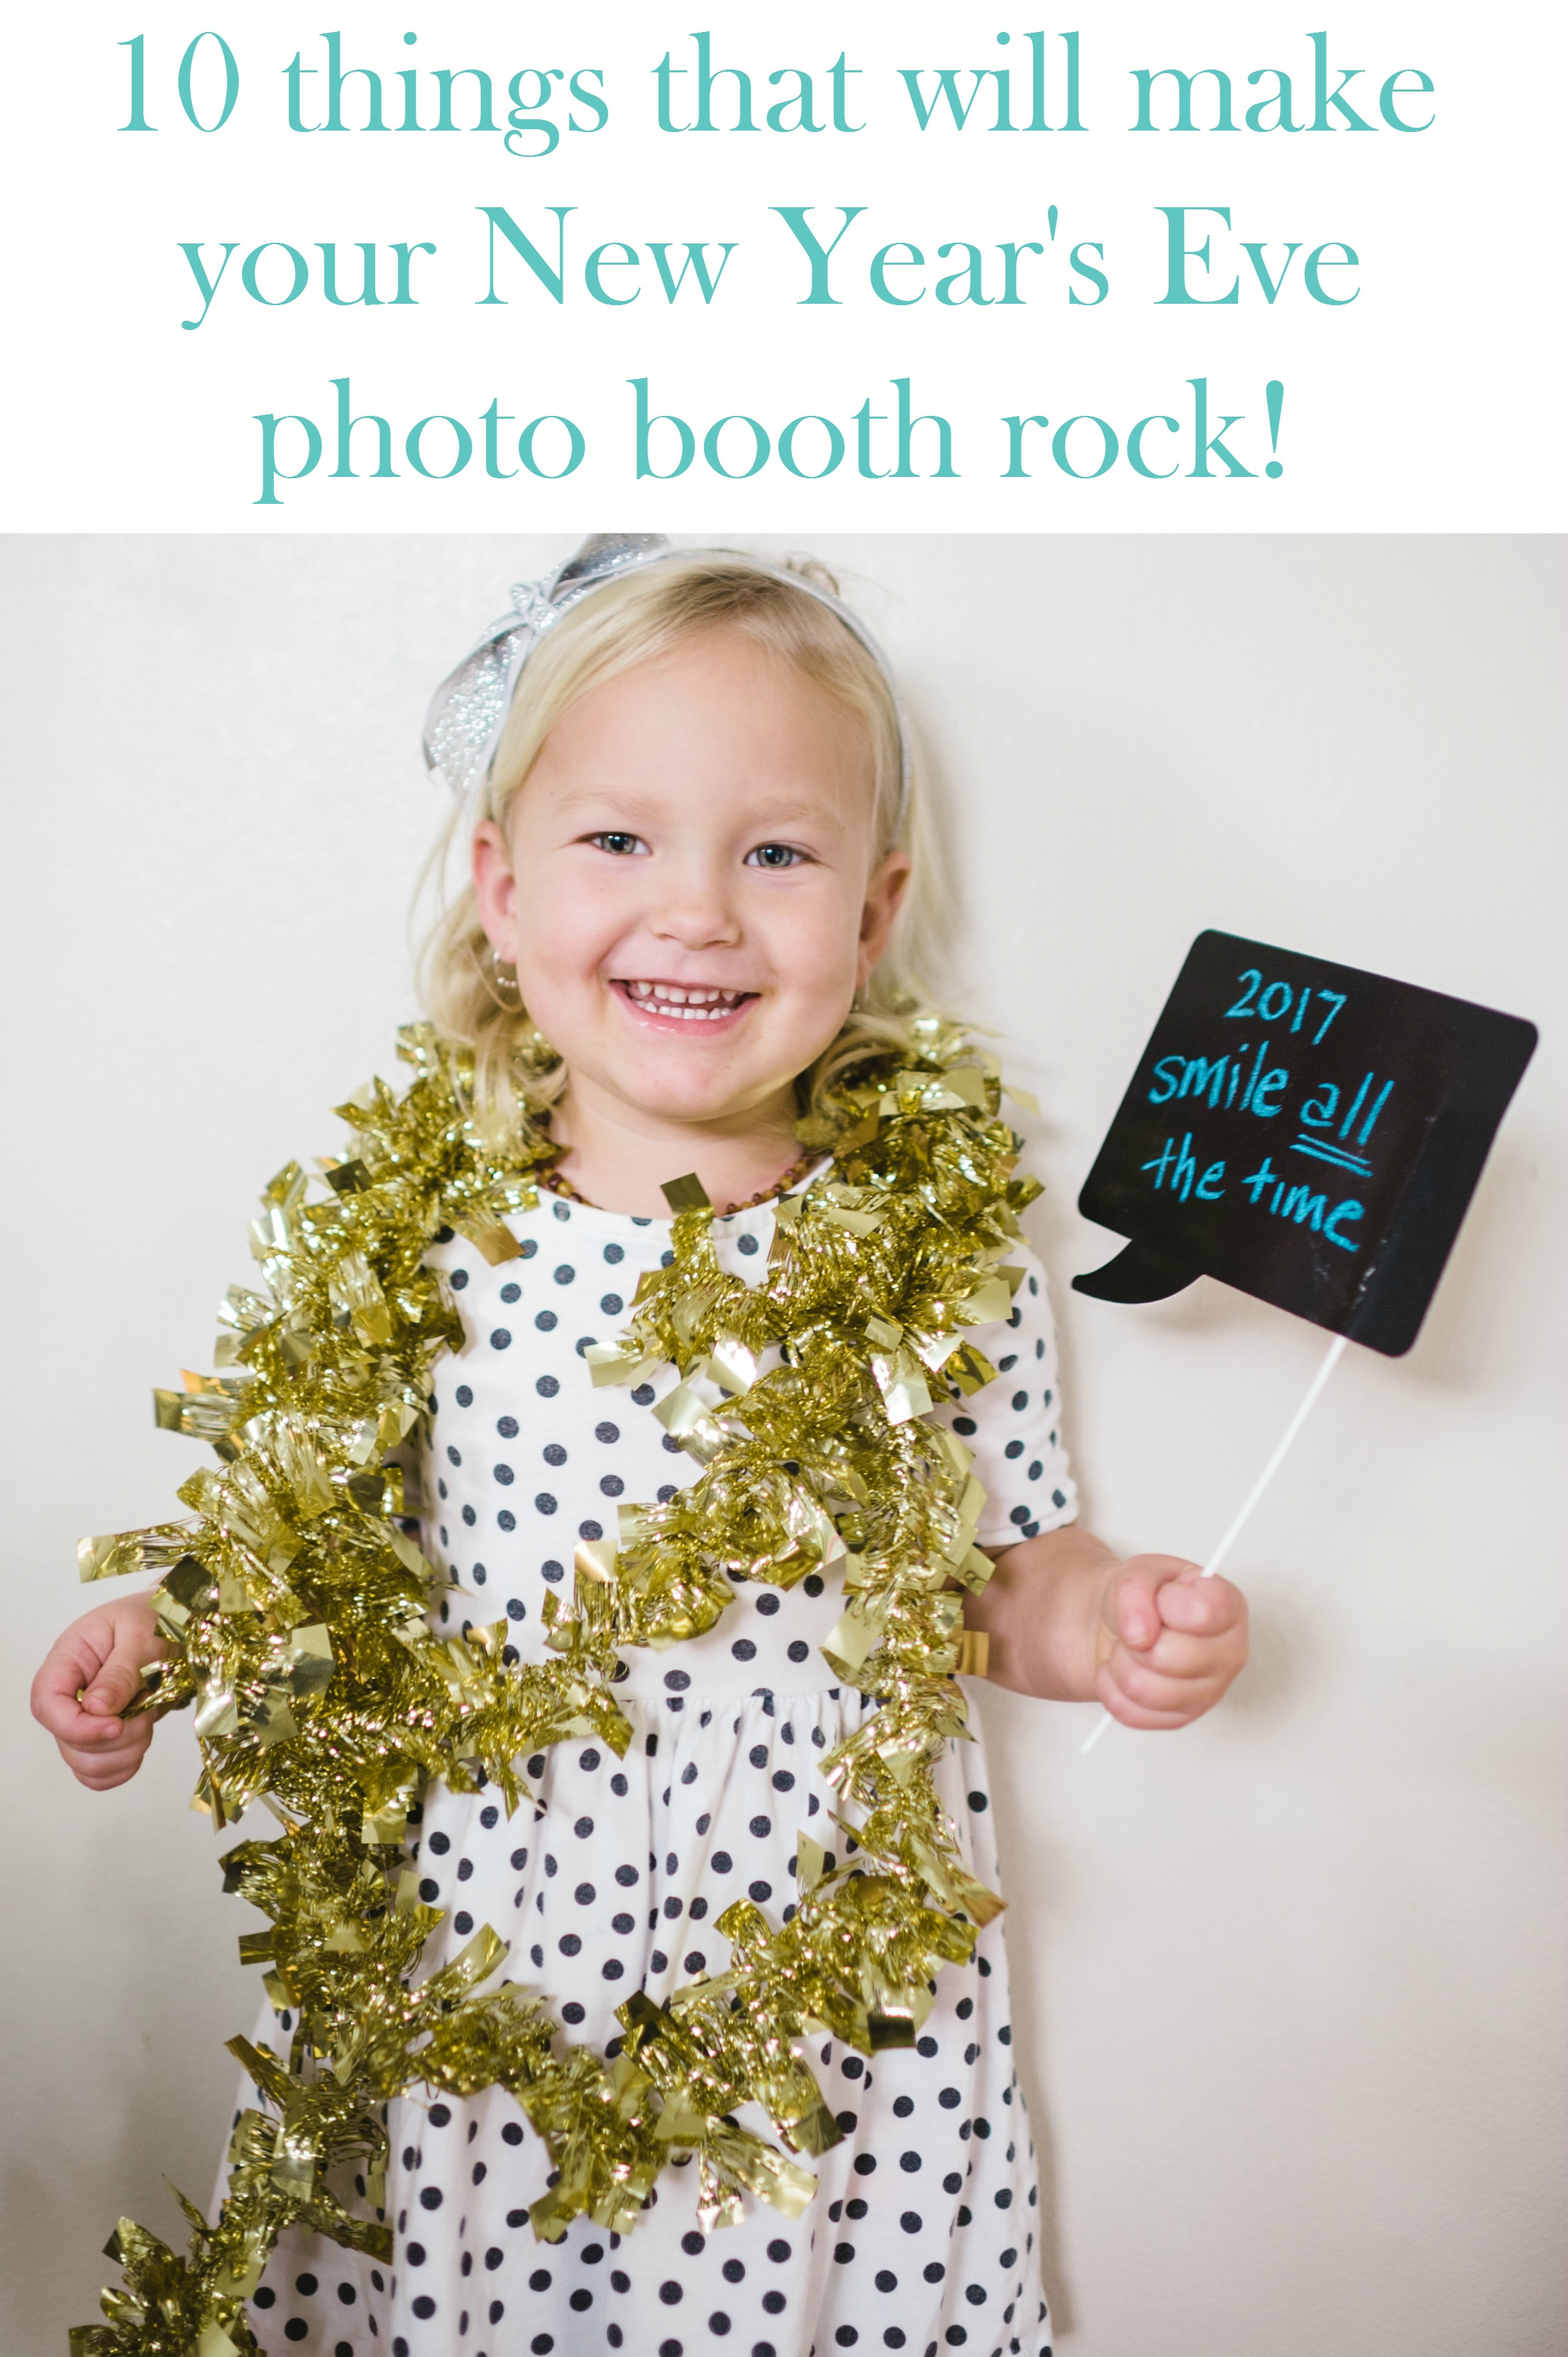 Photo booths are all the rage right now! Whether you're going to an adult party, or a family party photo booths are fun for everyone.